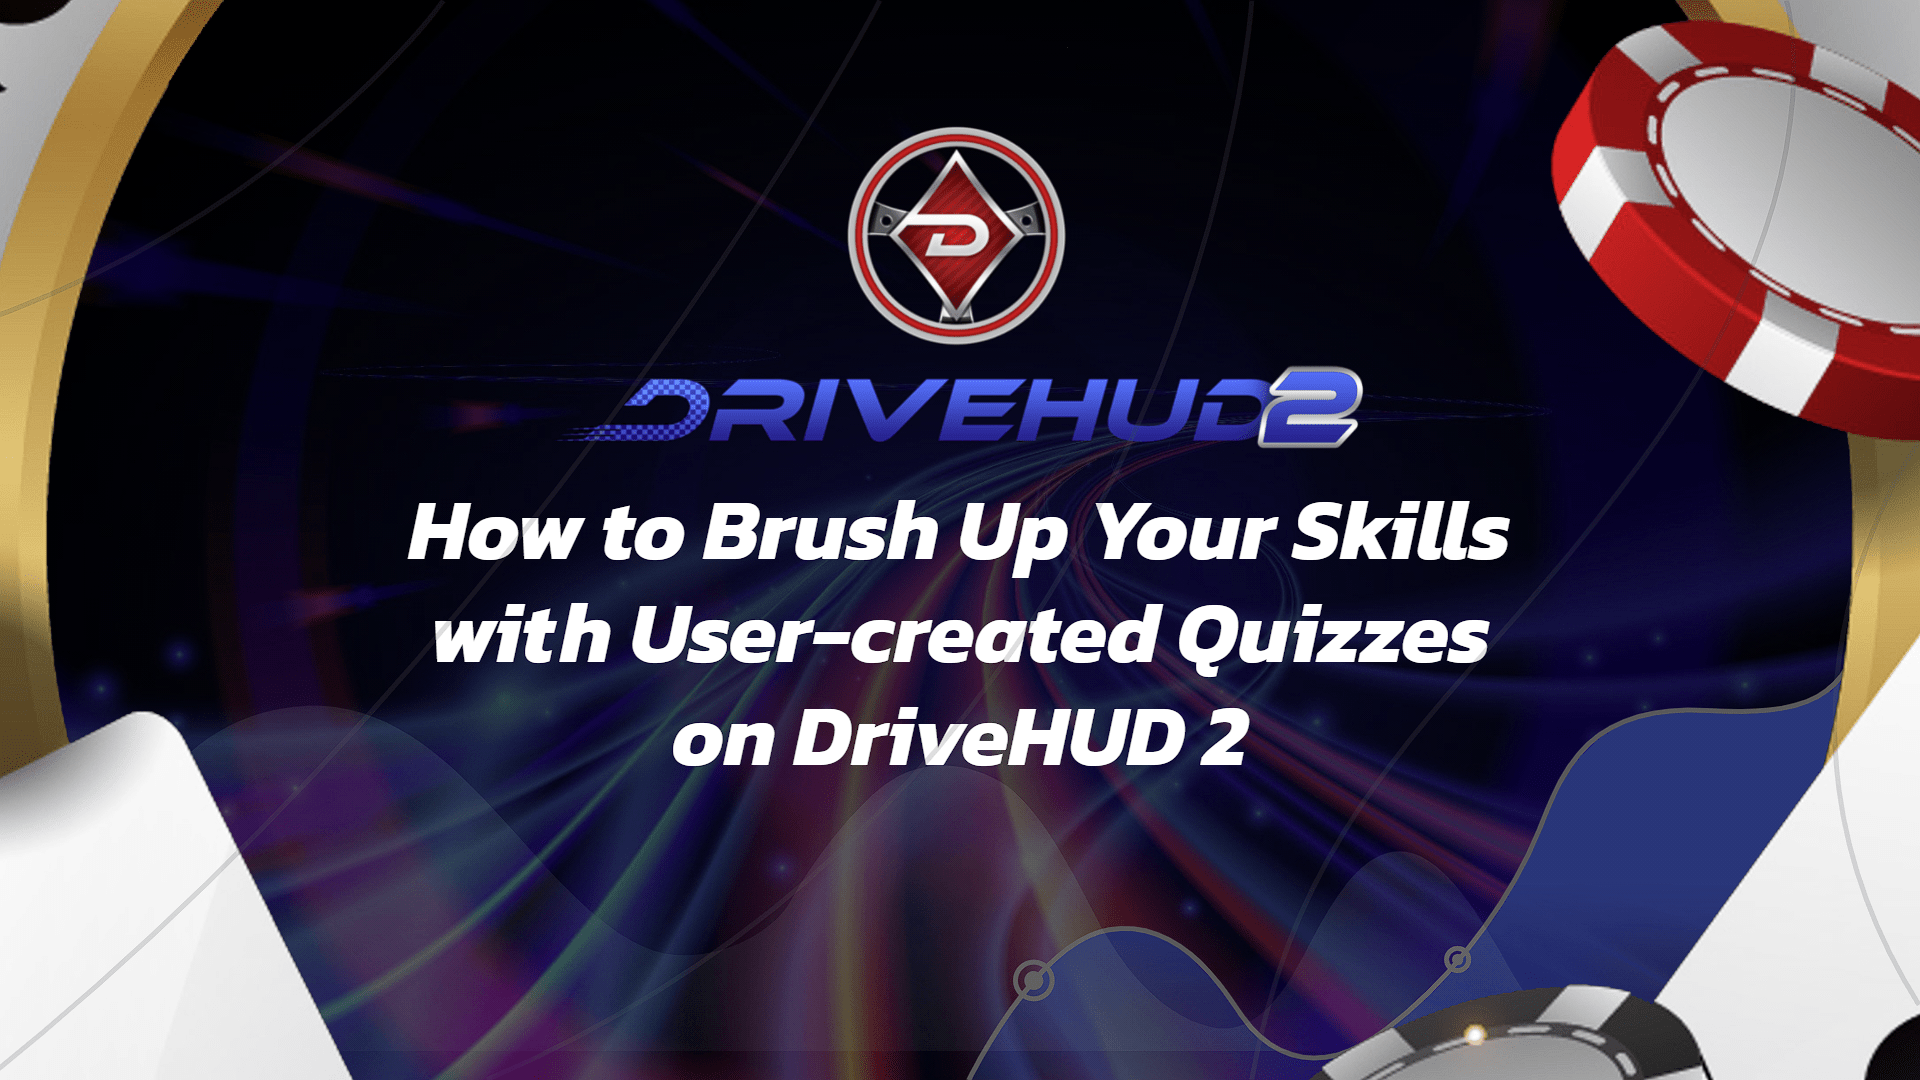 How to Brush Up Your Skills with User-created Quizzes on DriveHUD 2